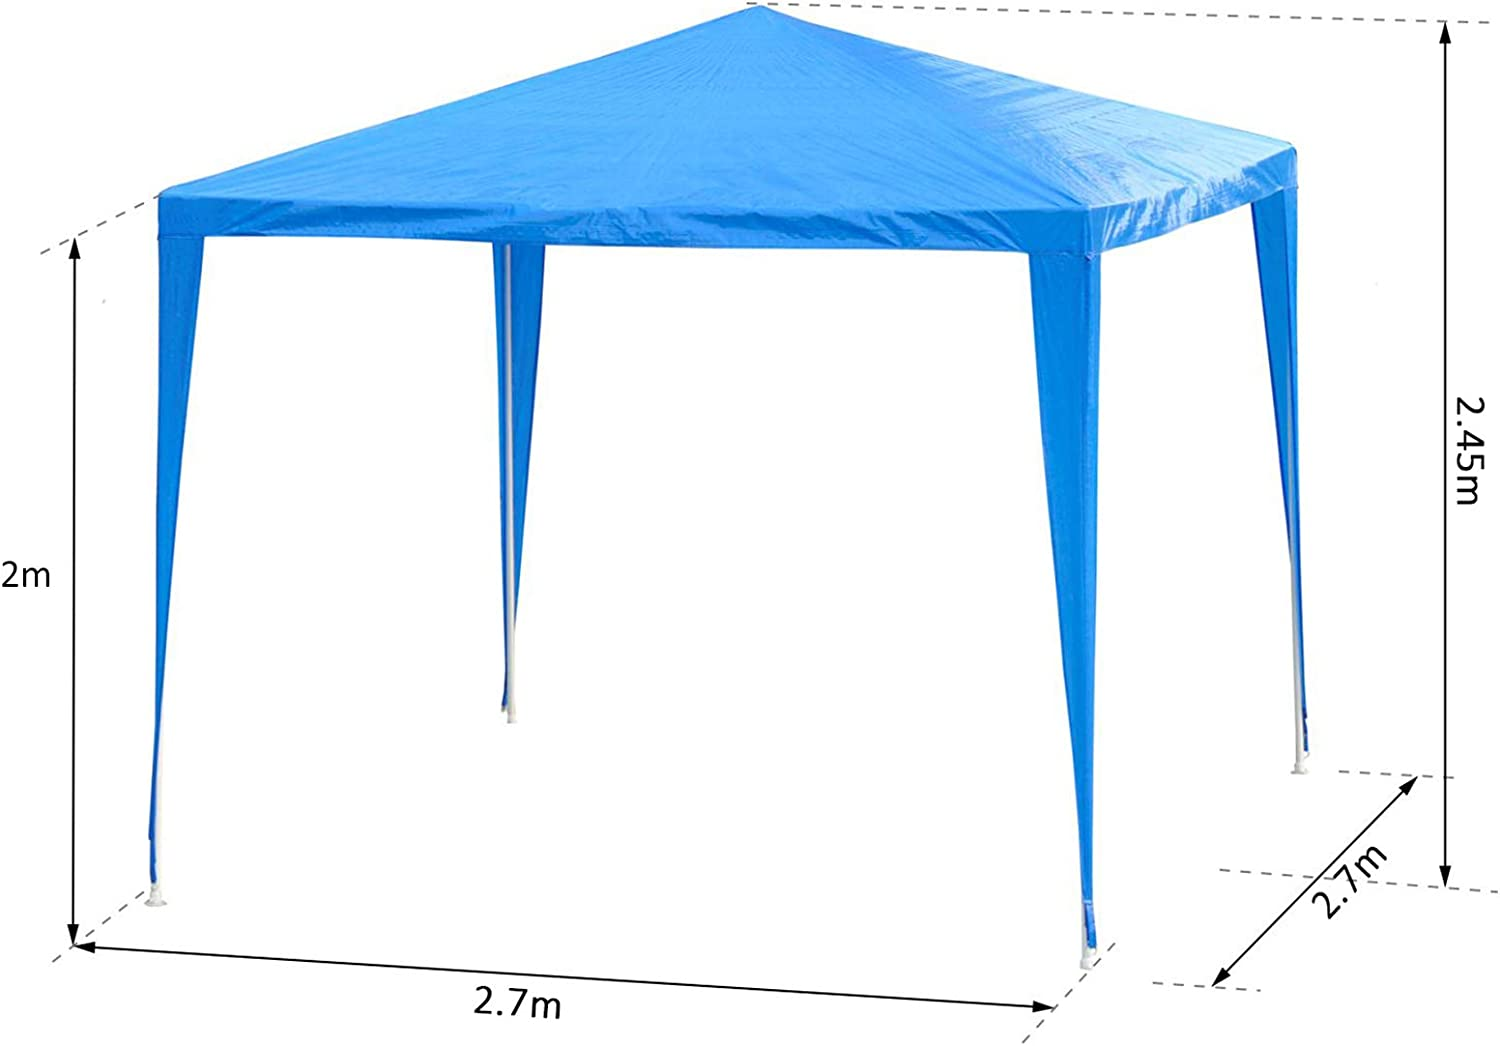 Blue Outsunny 2.7m x 2.7m Garden Heavy Duty Gazebo Marquee Party Tent Wedding Canopy Outdoor